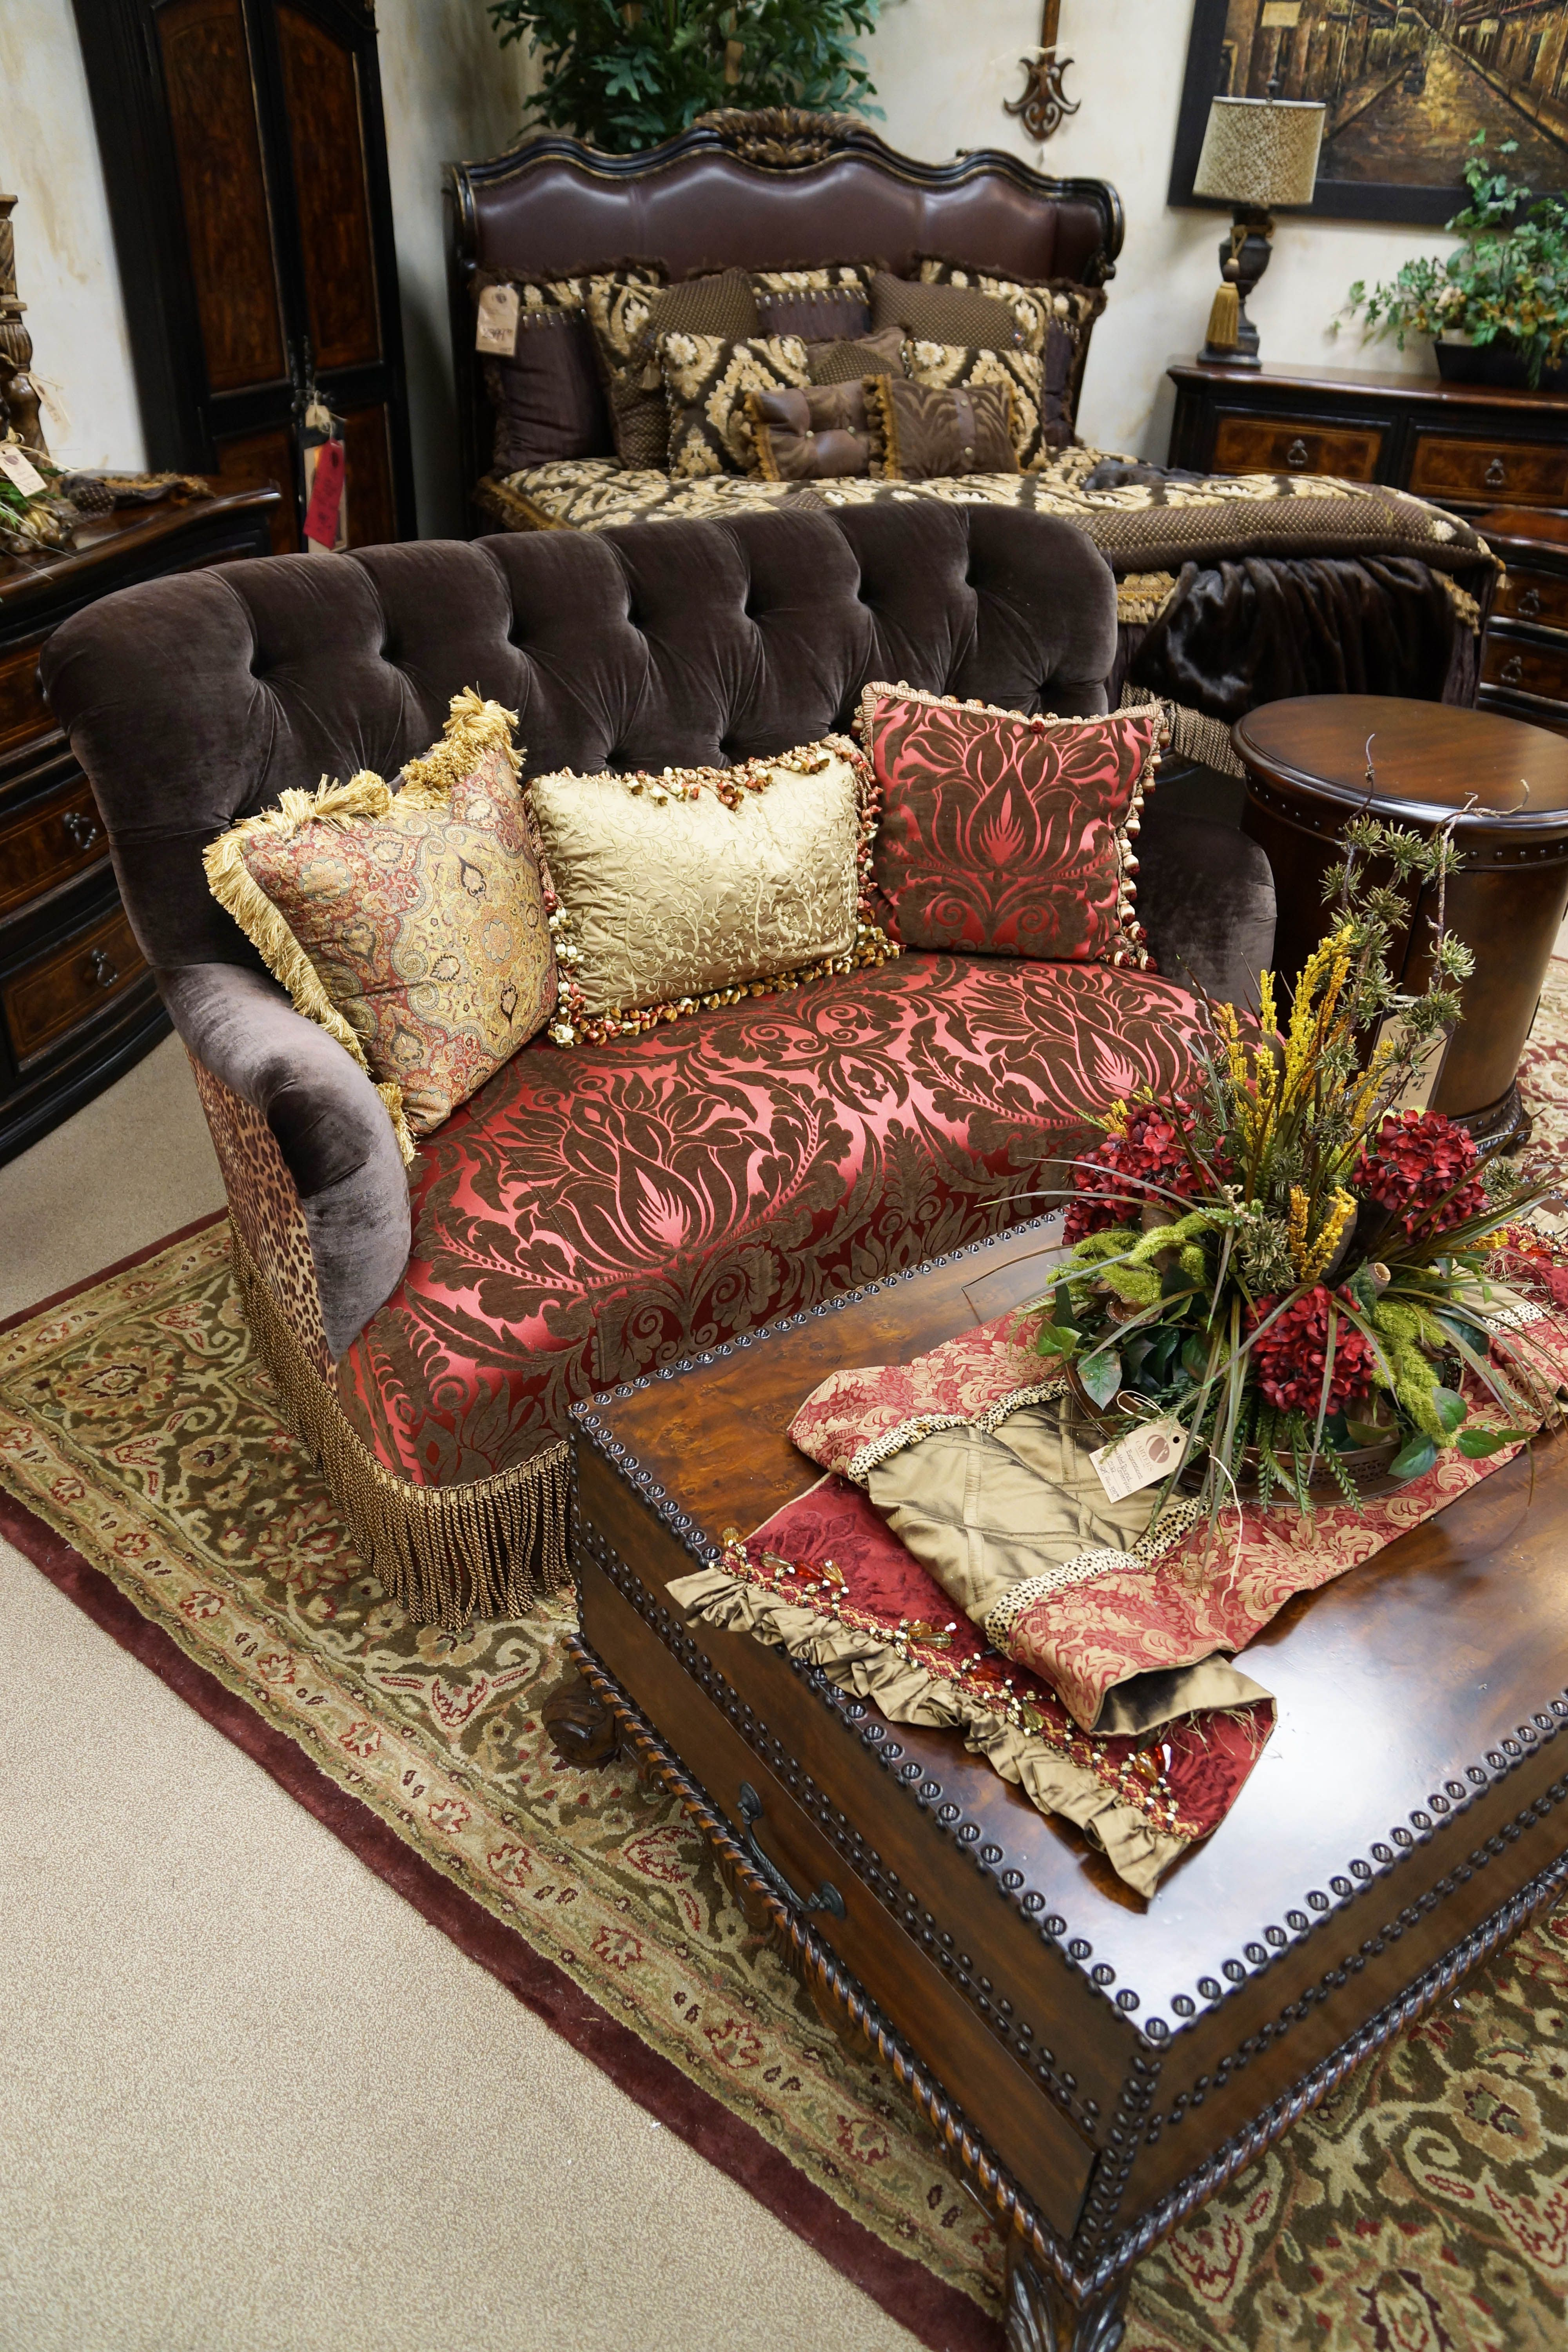 Exceptionnel Home Terrain By Paul Robert Available At Carteru0027s Furniture Midland, Texas  432 682 2843 Http://www.cartersfurnituremidland.com/